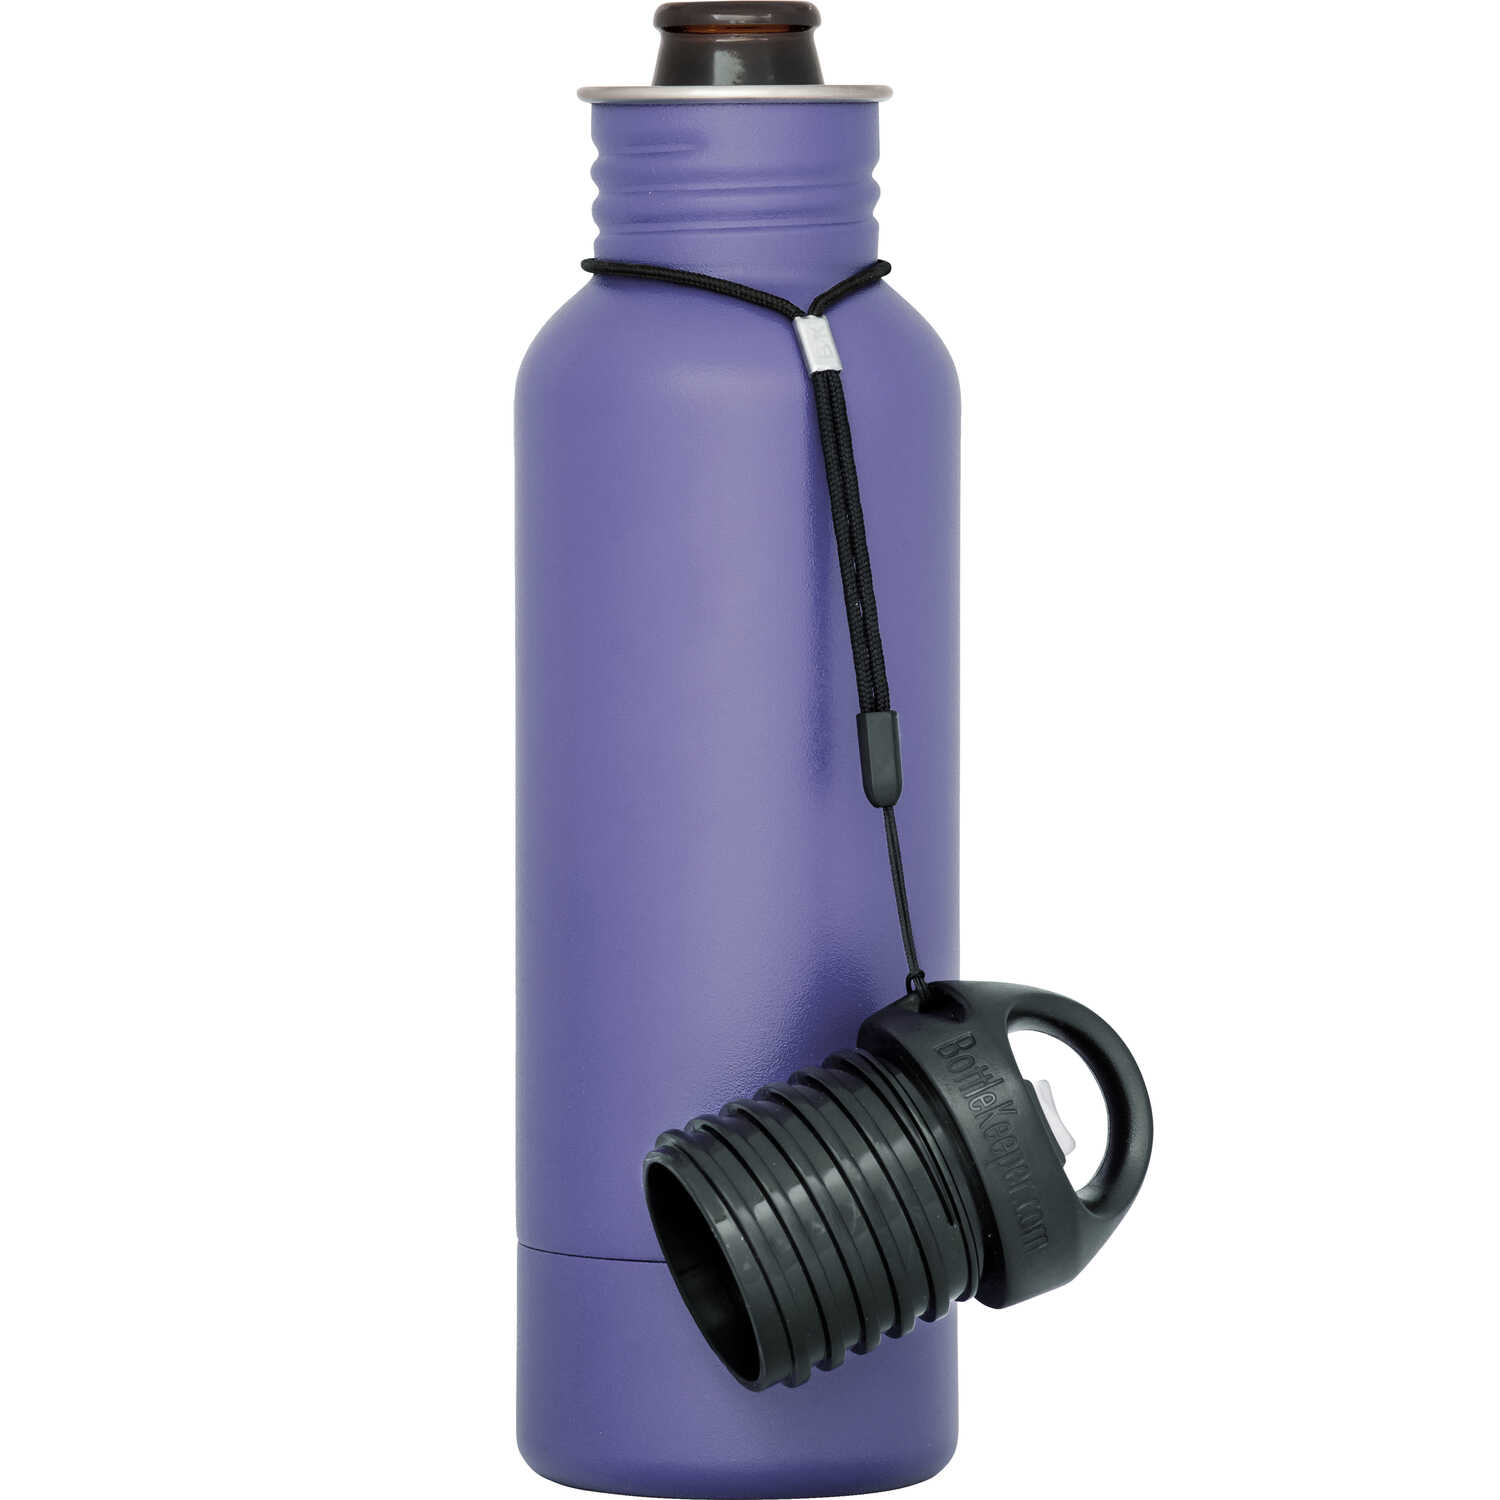 BottleKeeper  The Standard 2.0  Insulated Bottle Koozie  12 oz. Purple  1 pk